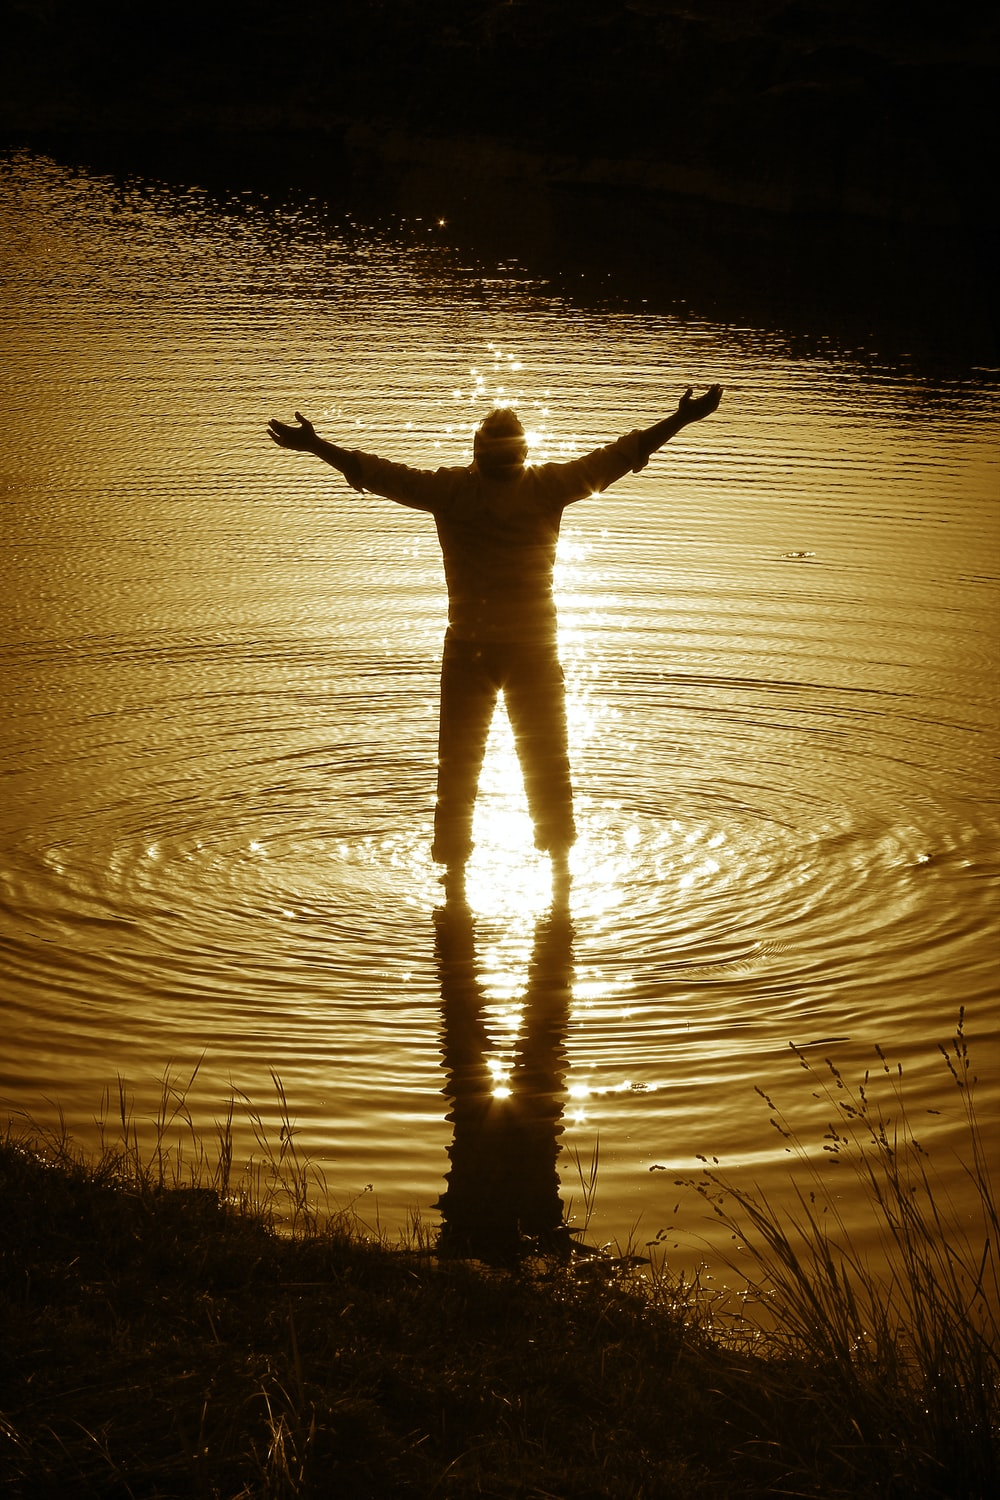 silhouette of person standing on water during daytime